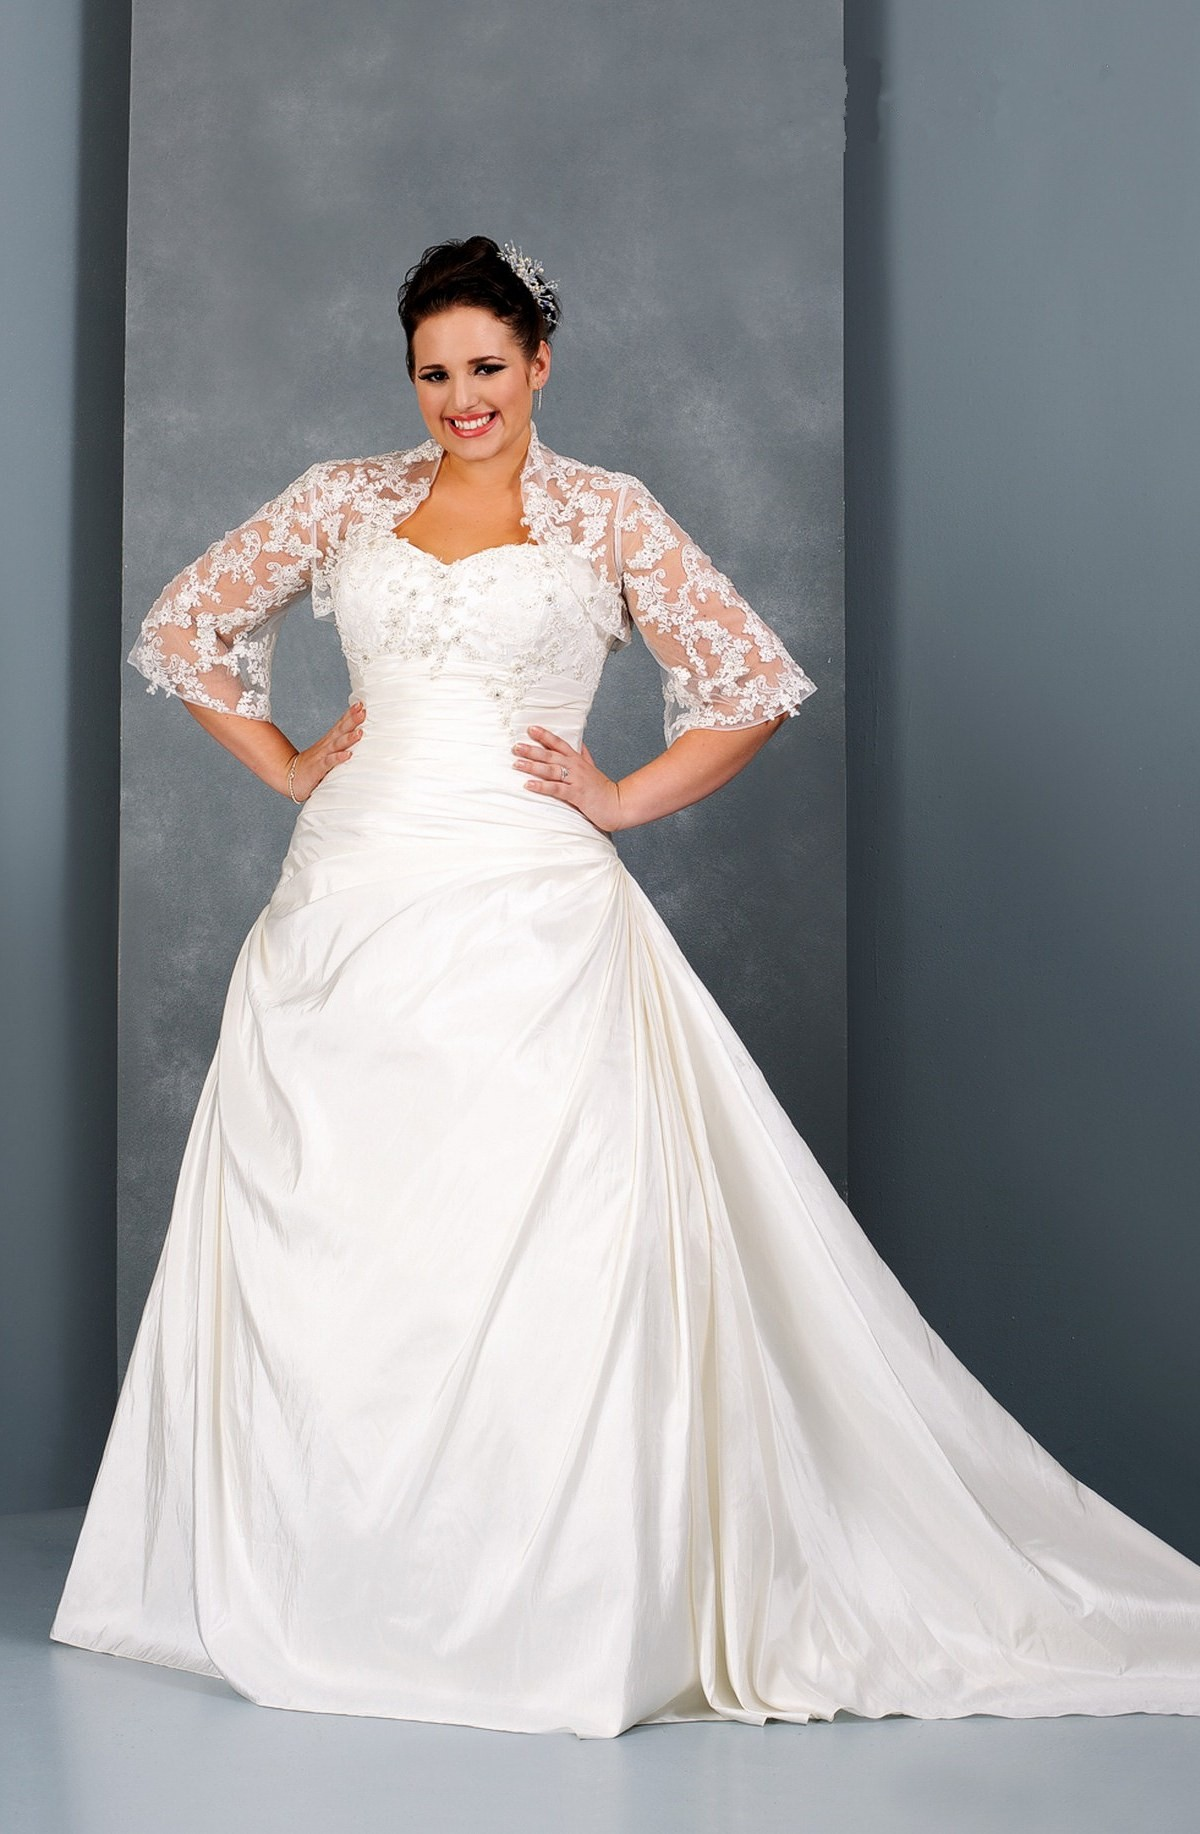 Plus Size Dresses With Jackets For Wedding 23